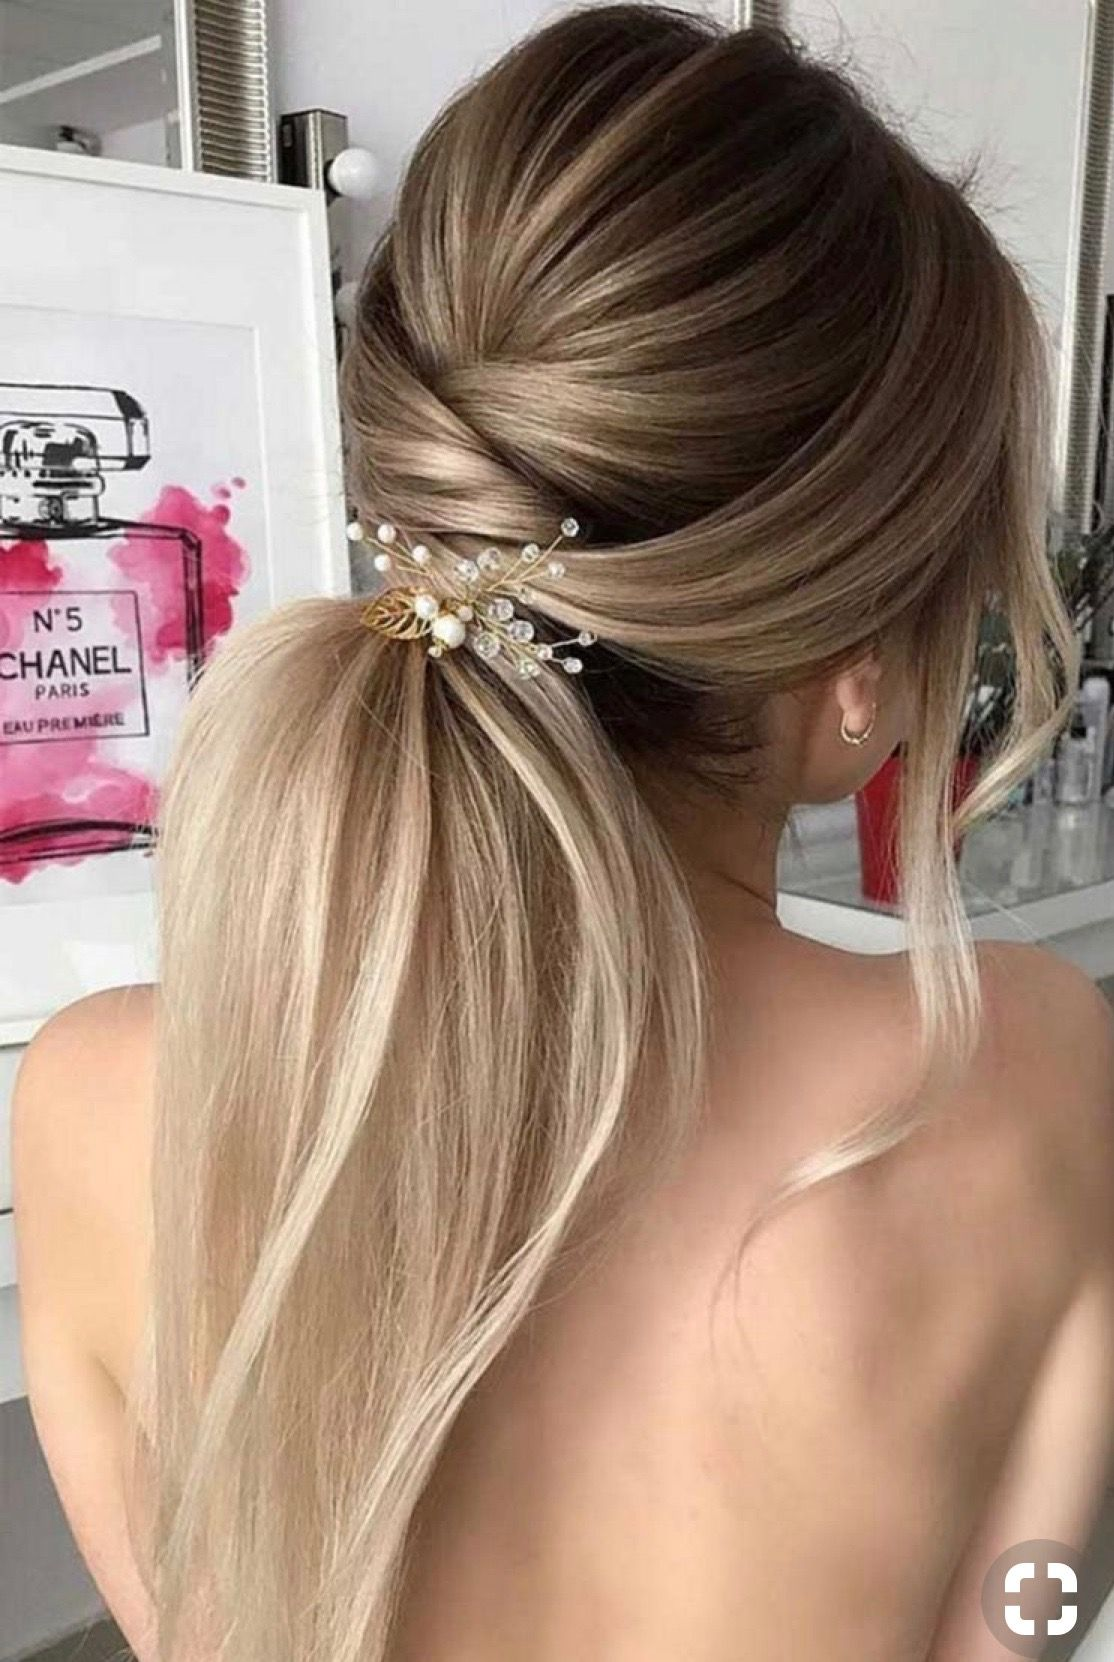 Pin by debbie morgan on hair pinterest homecoming hair style